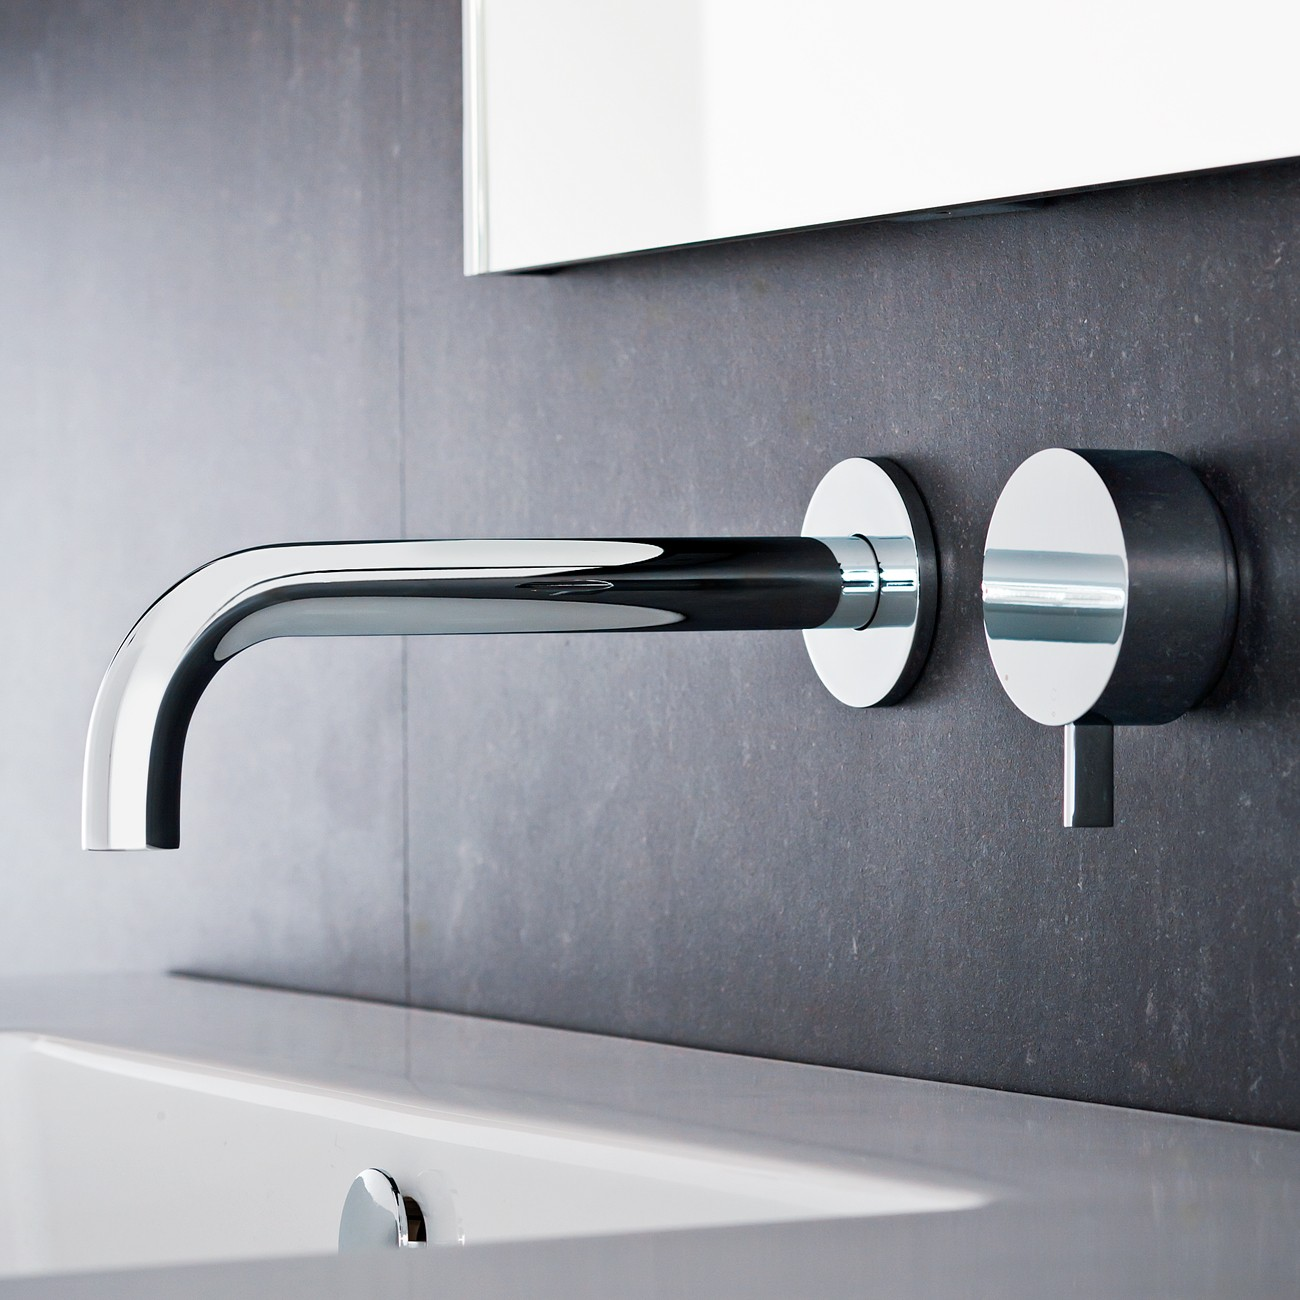 Full Resolution 1300 X Next Wall Mounted Basin Mixer Tap